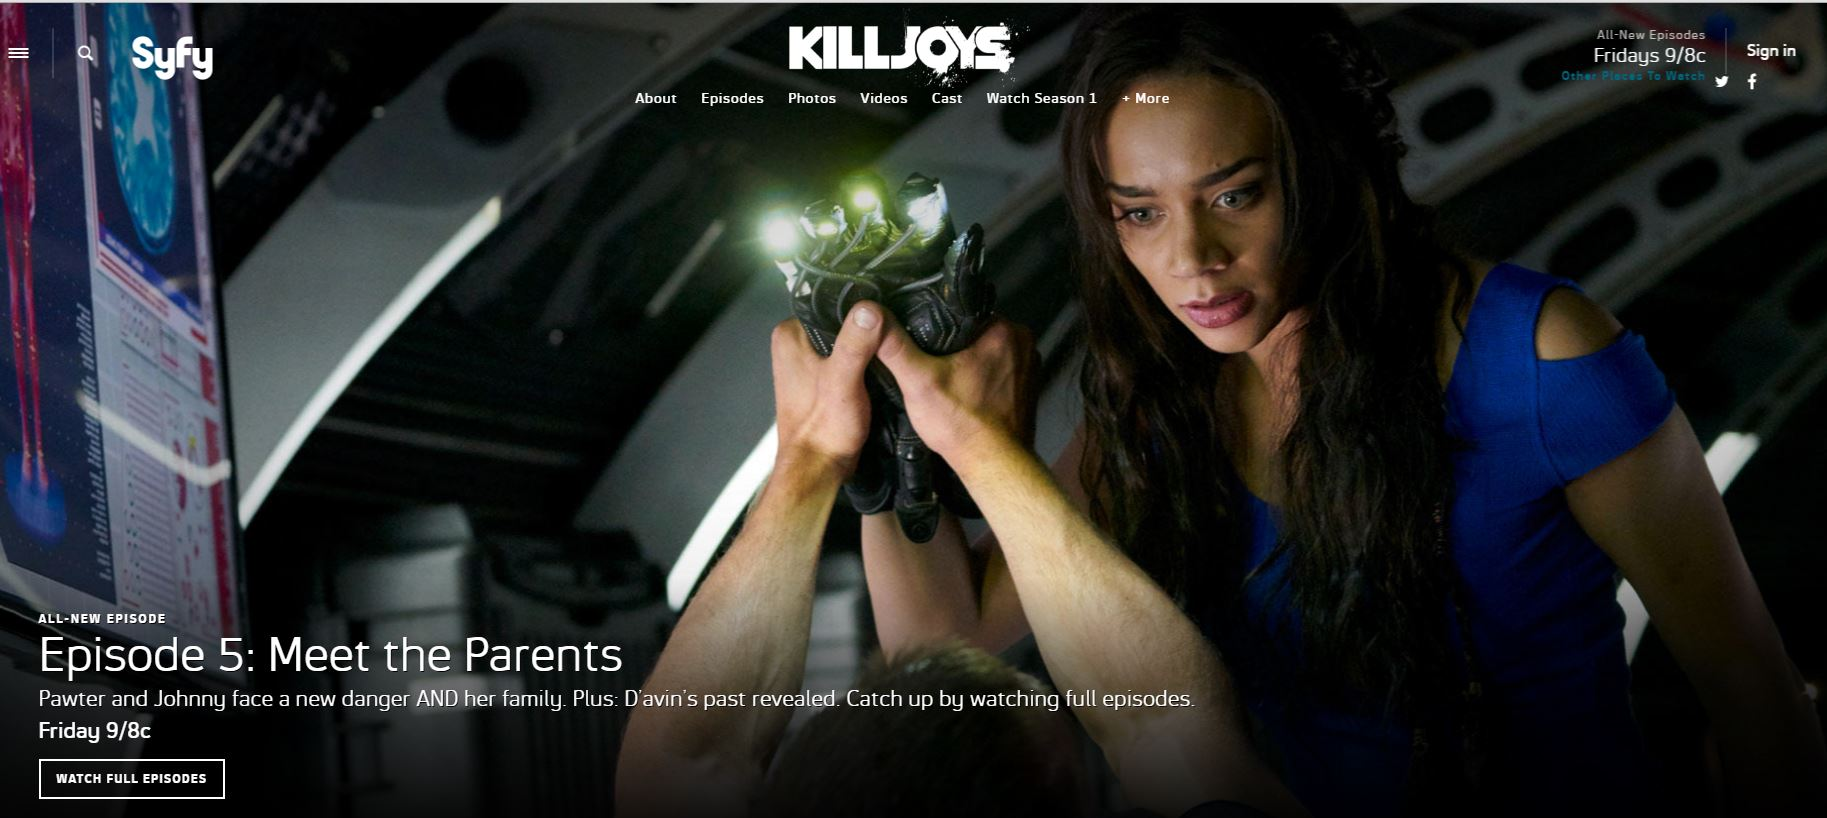 streaming-killjoys-free-online